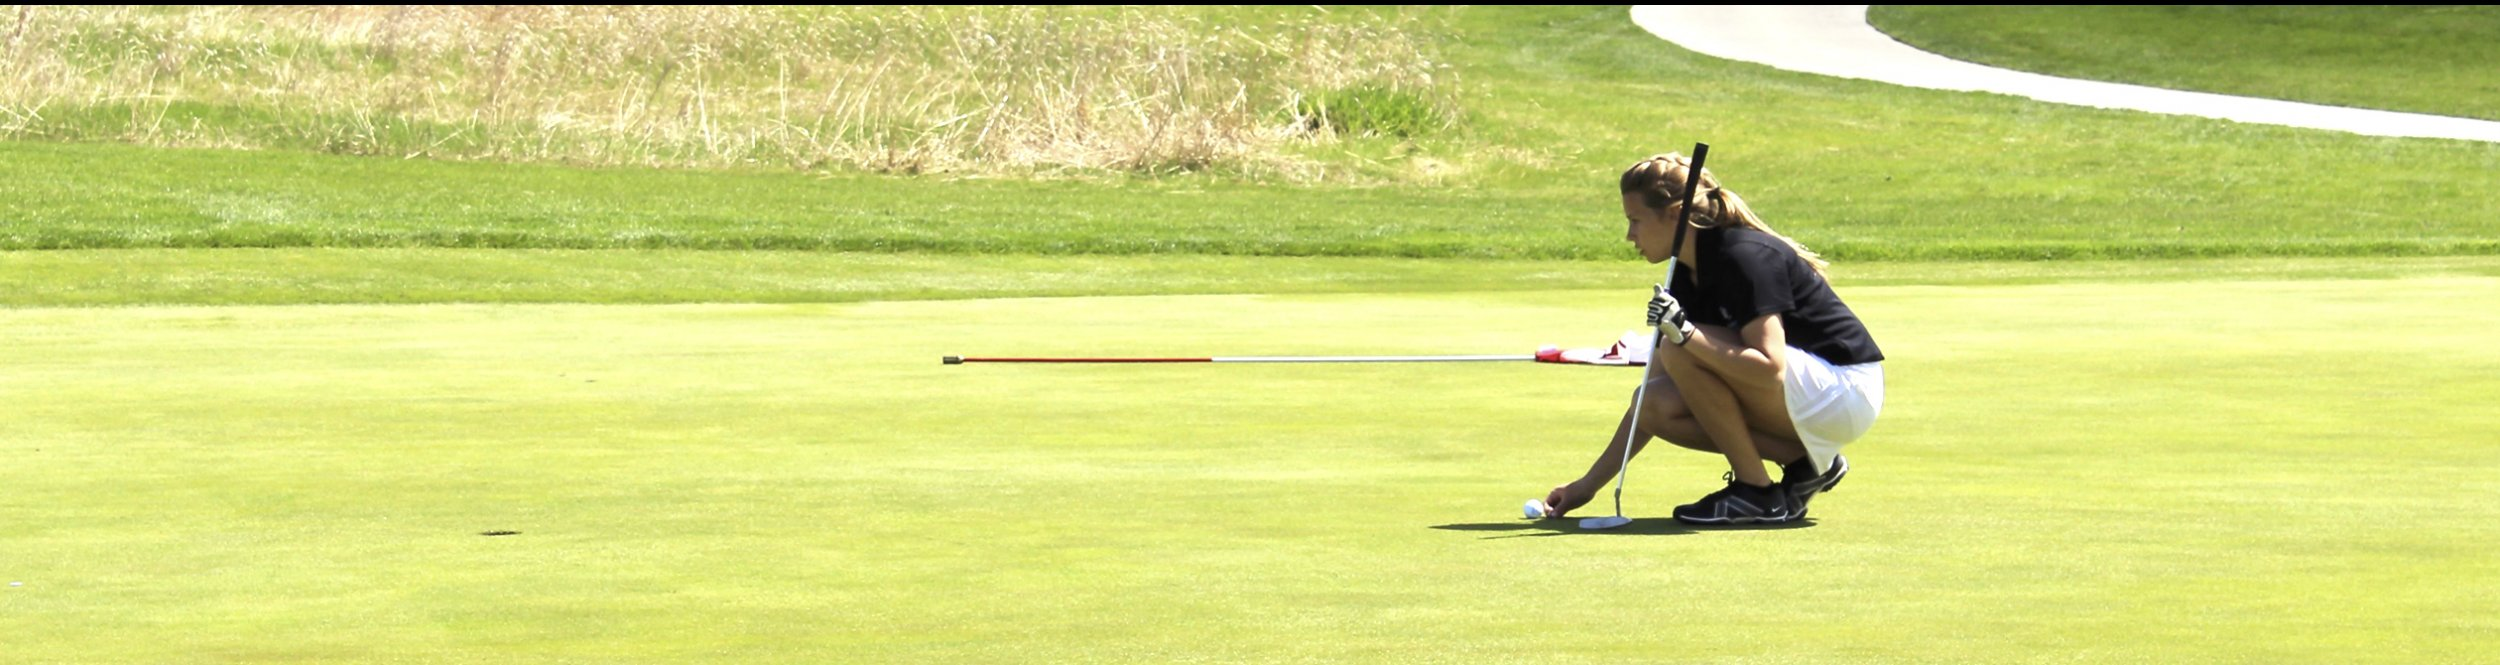 A female golfer crouches on a golf course.